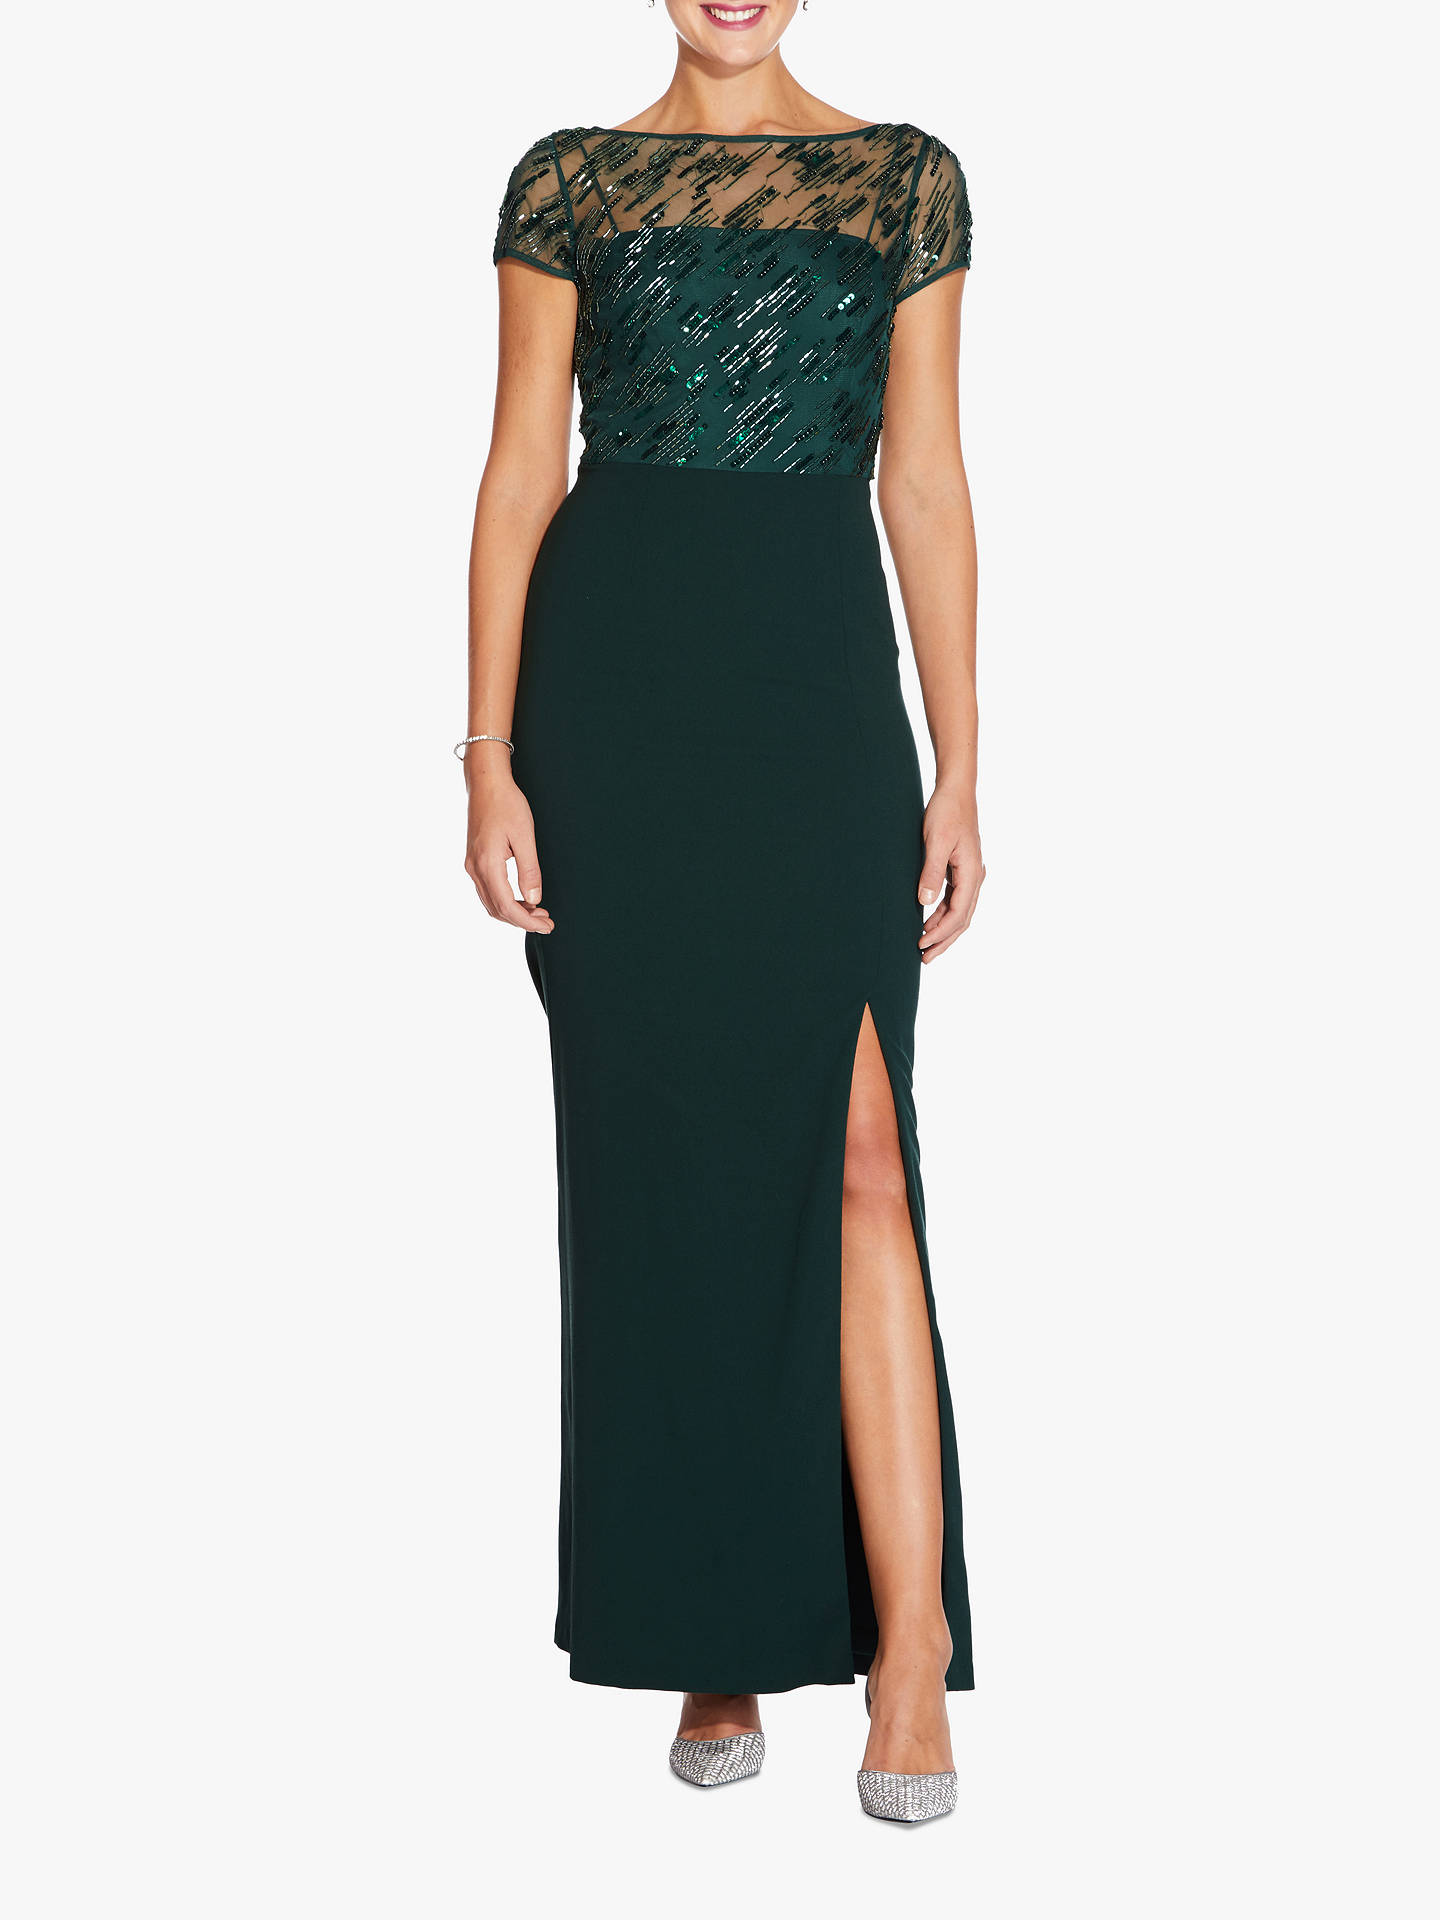 BuyAdrianna Papell Beaded Cap Sleeve Crepe Gown, Dusty Emerald, 10 Online at johnlewis.